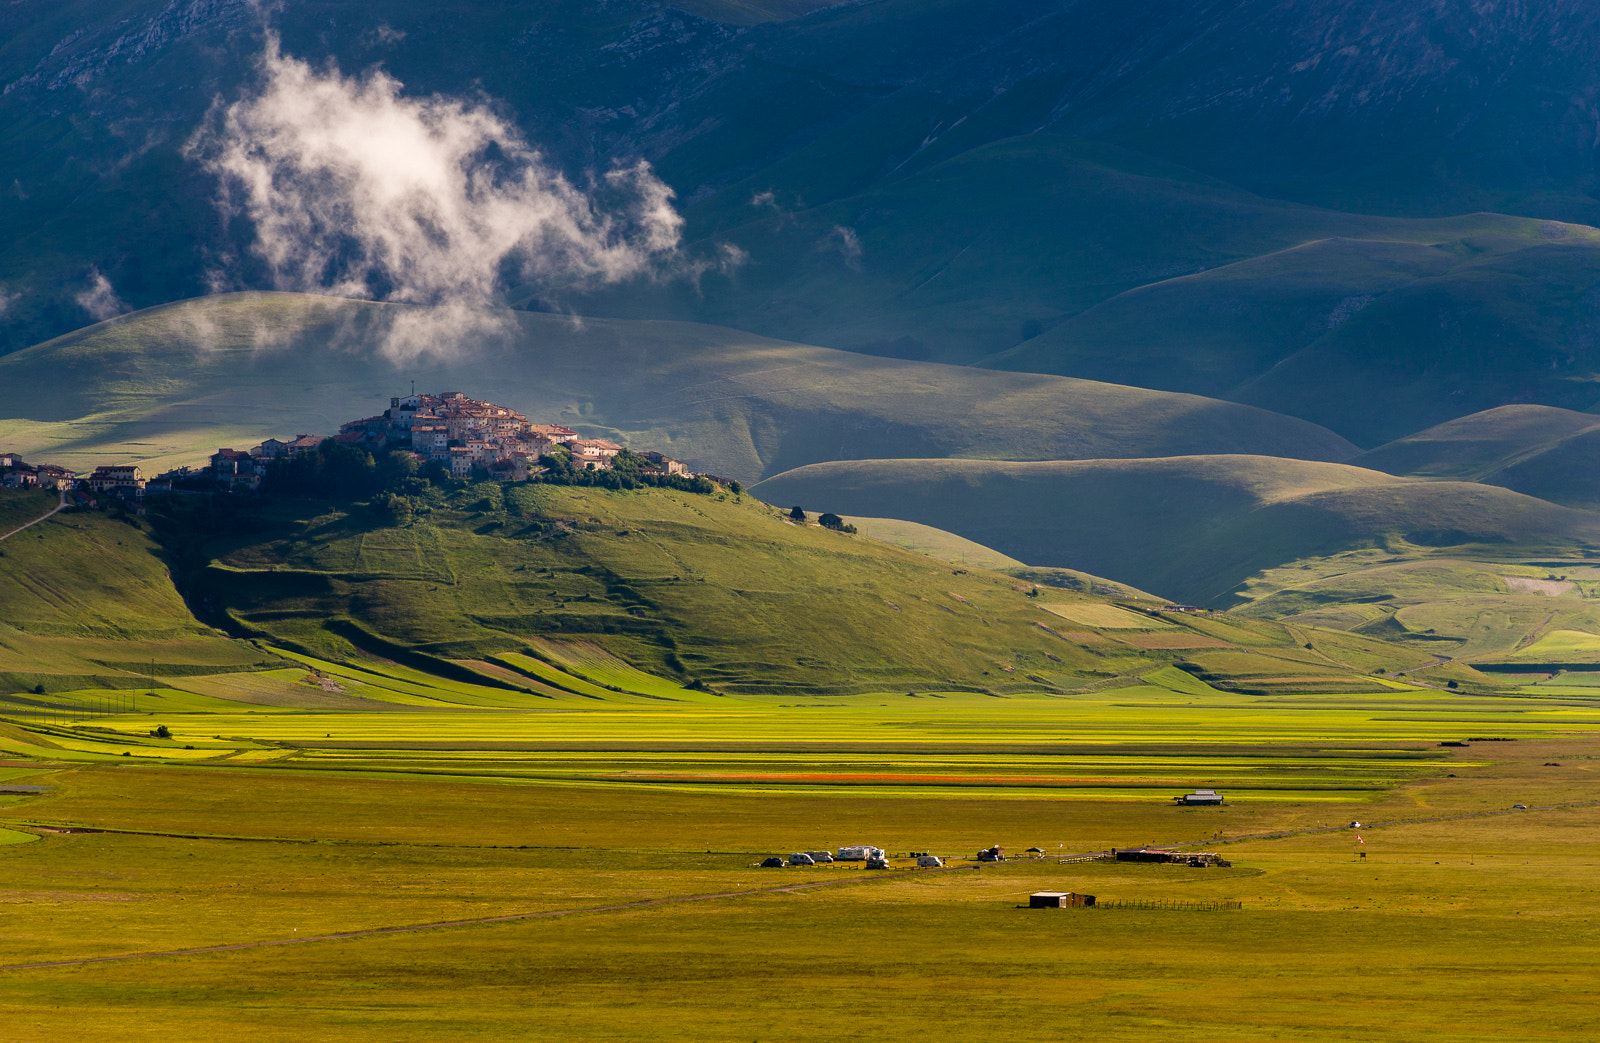 Photograph Castelluccio in morning sun by Hans Kruse on 500px